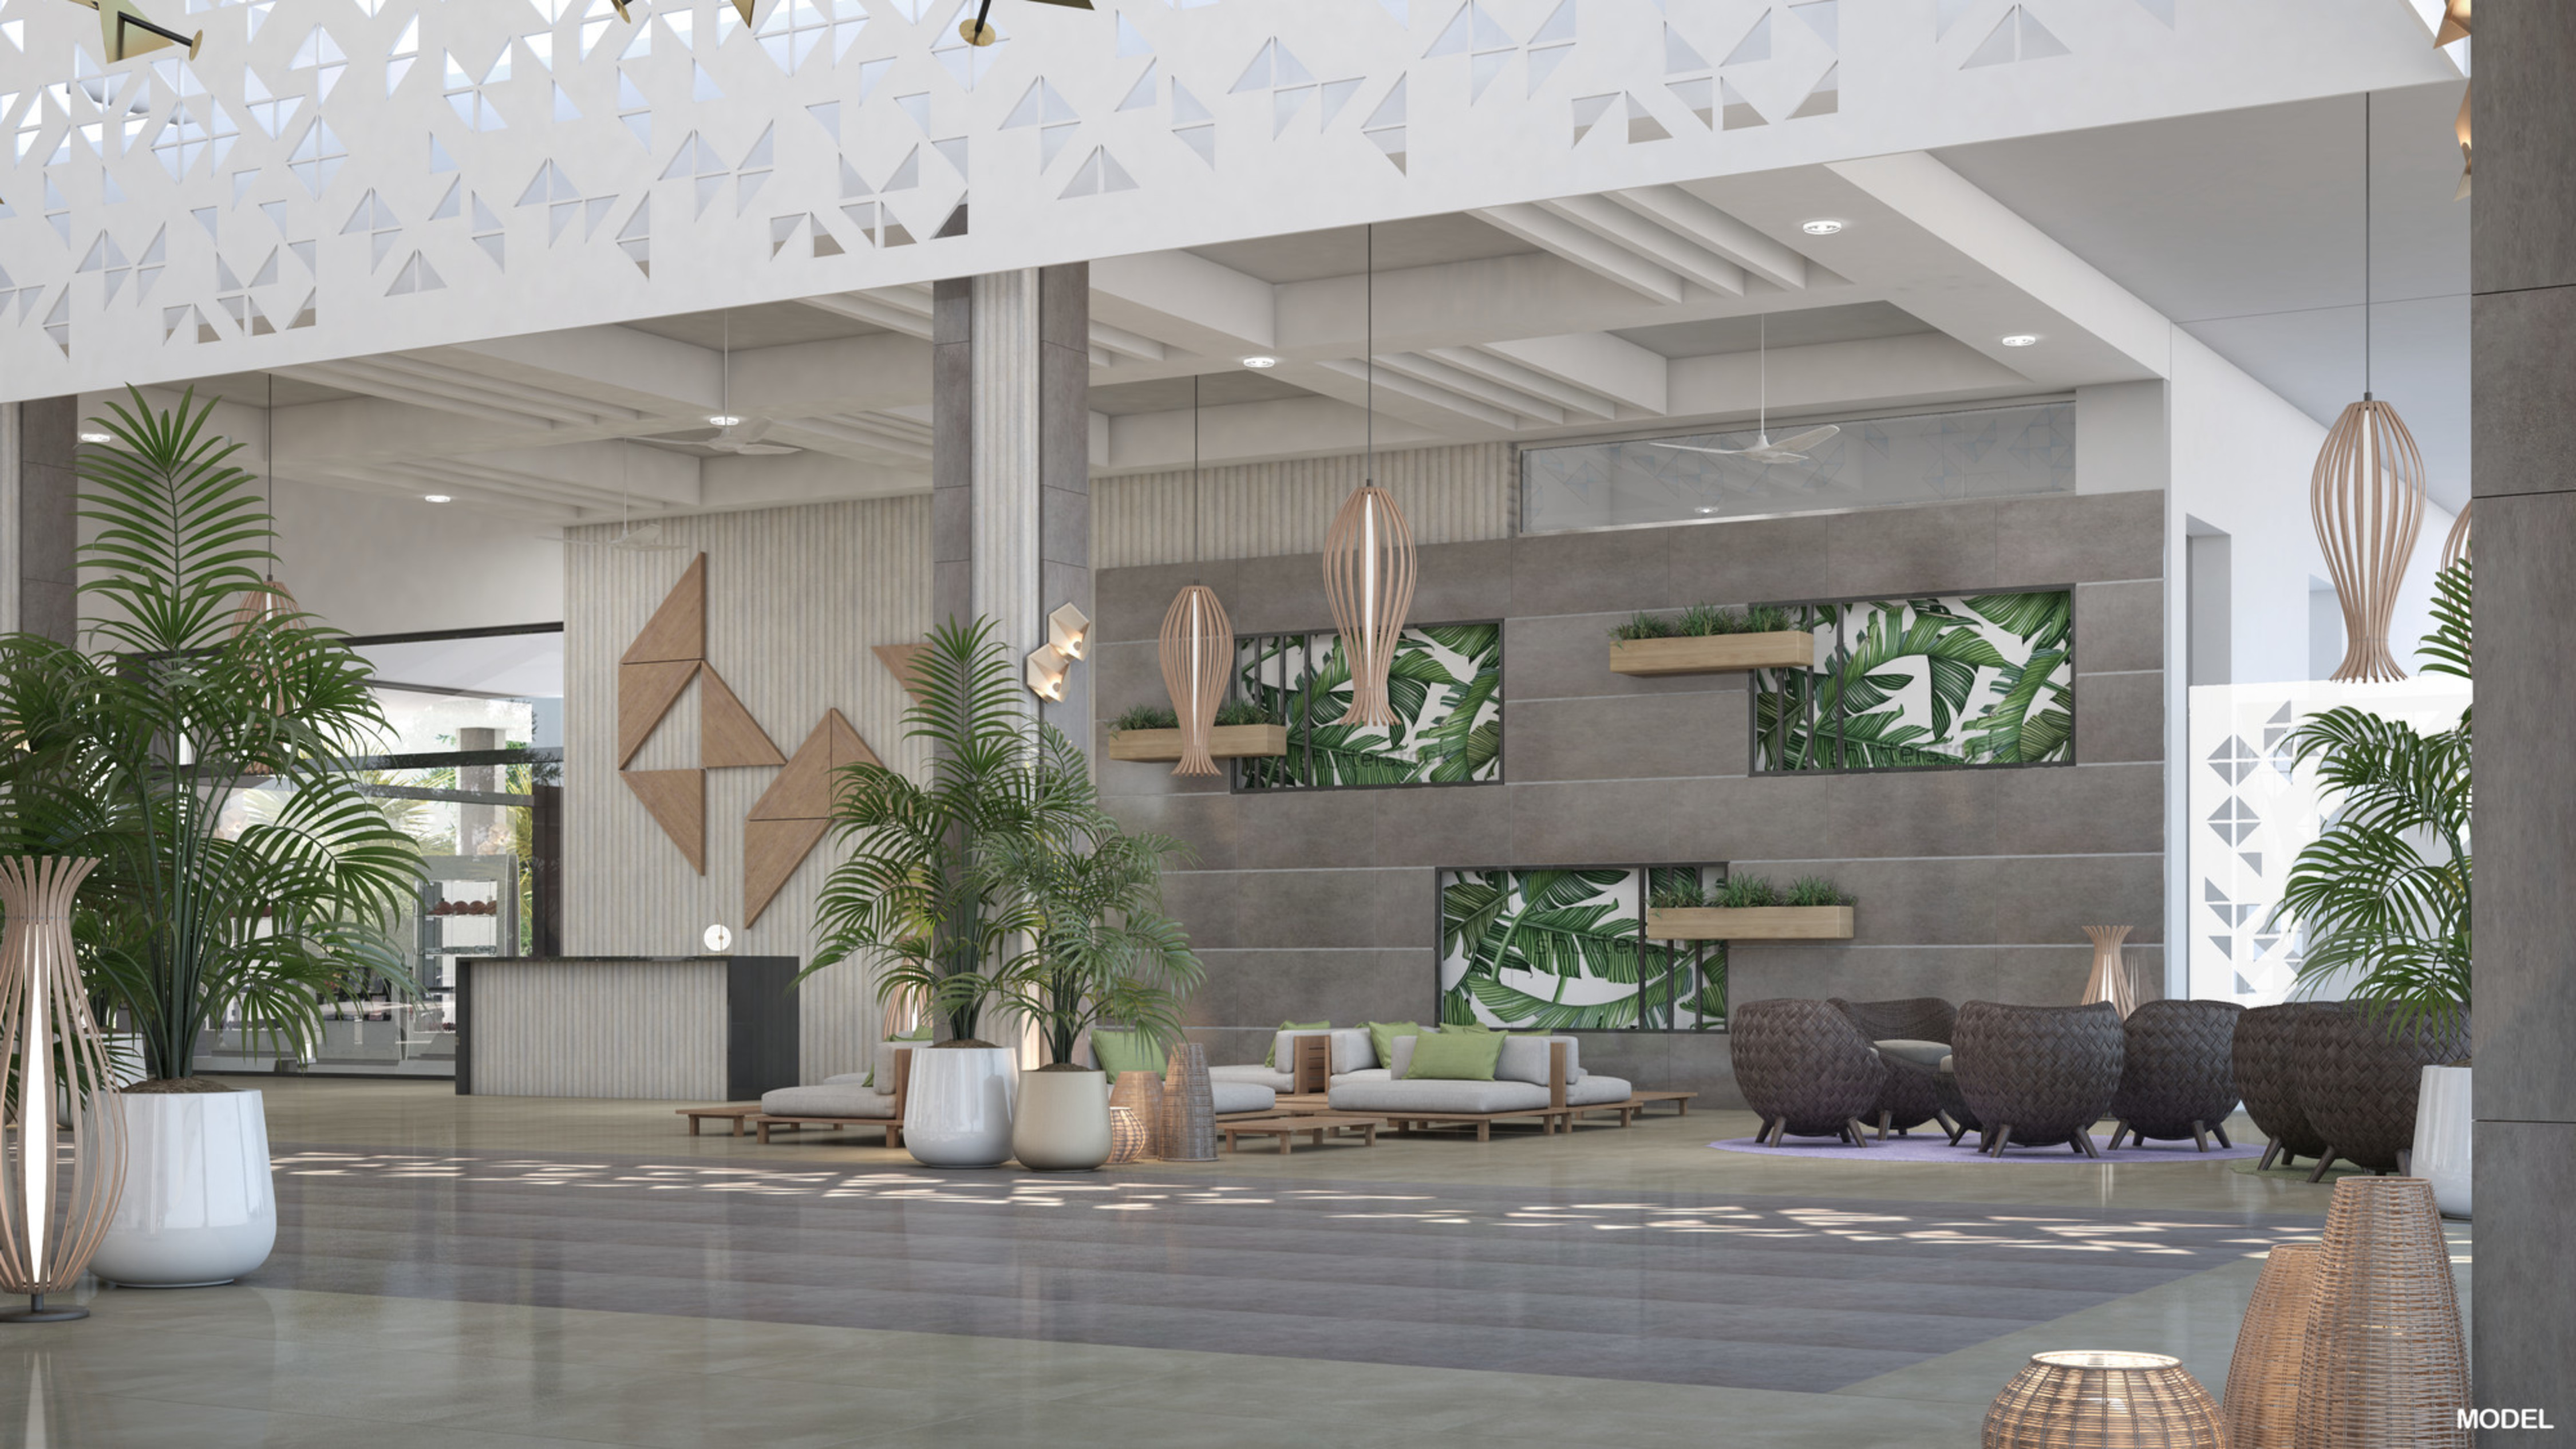 Lobby of the Riu Ocho Rios, located in Jamaica, Luis Riu´s plan is to refurbish this hotel in 2019